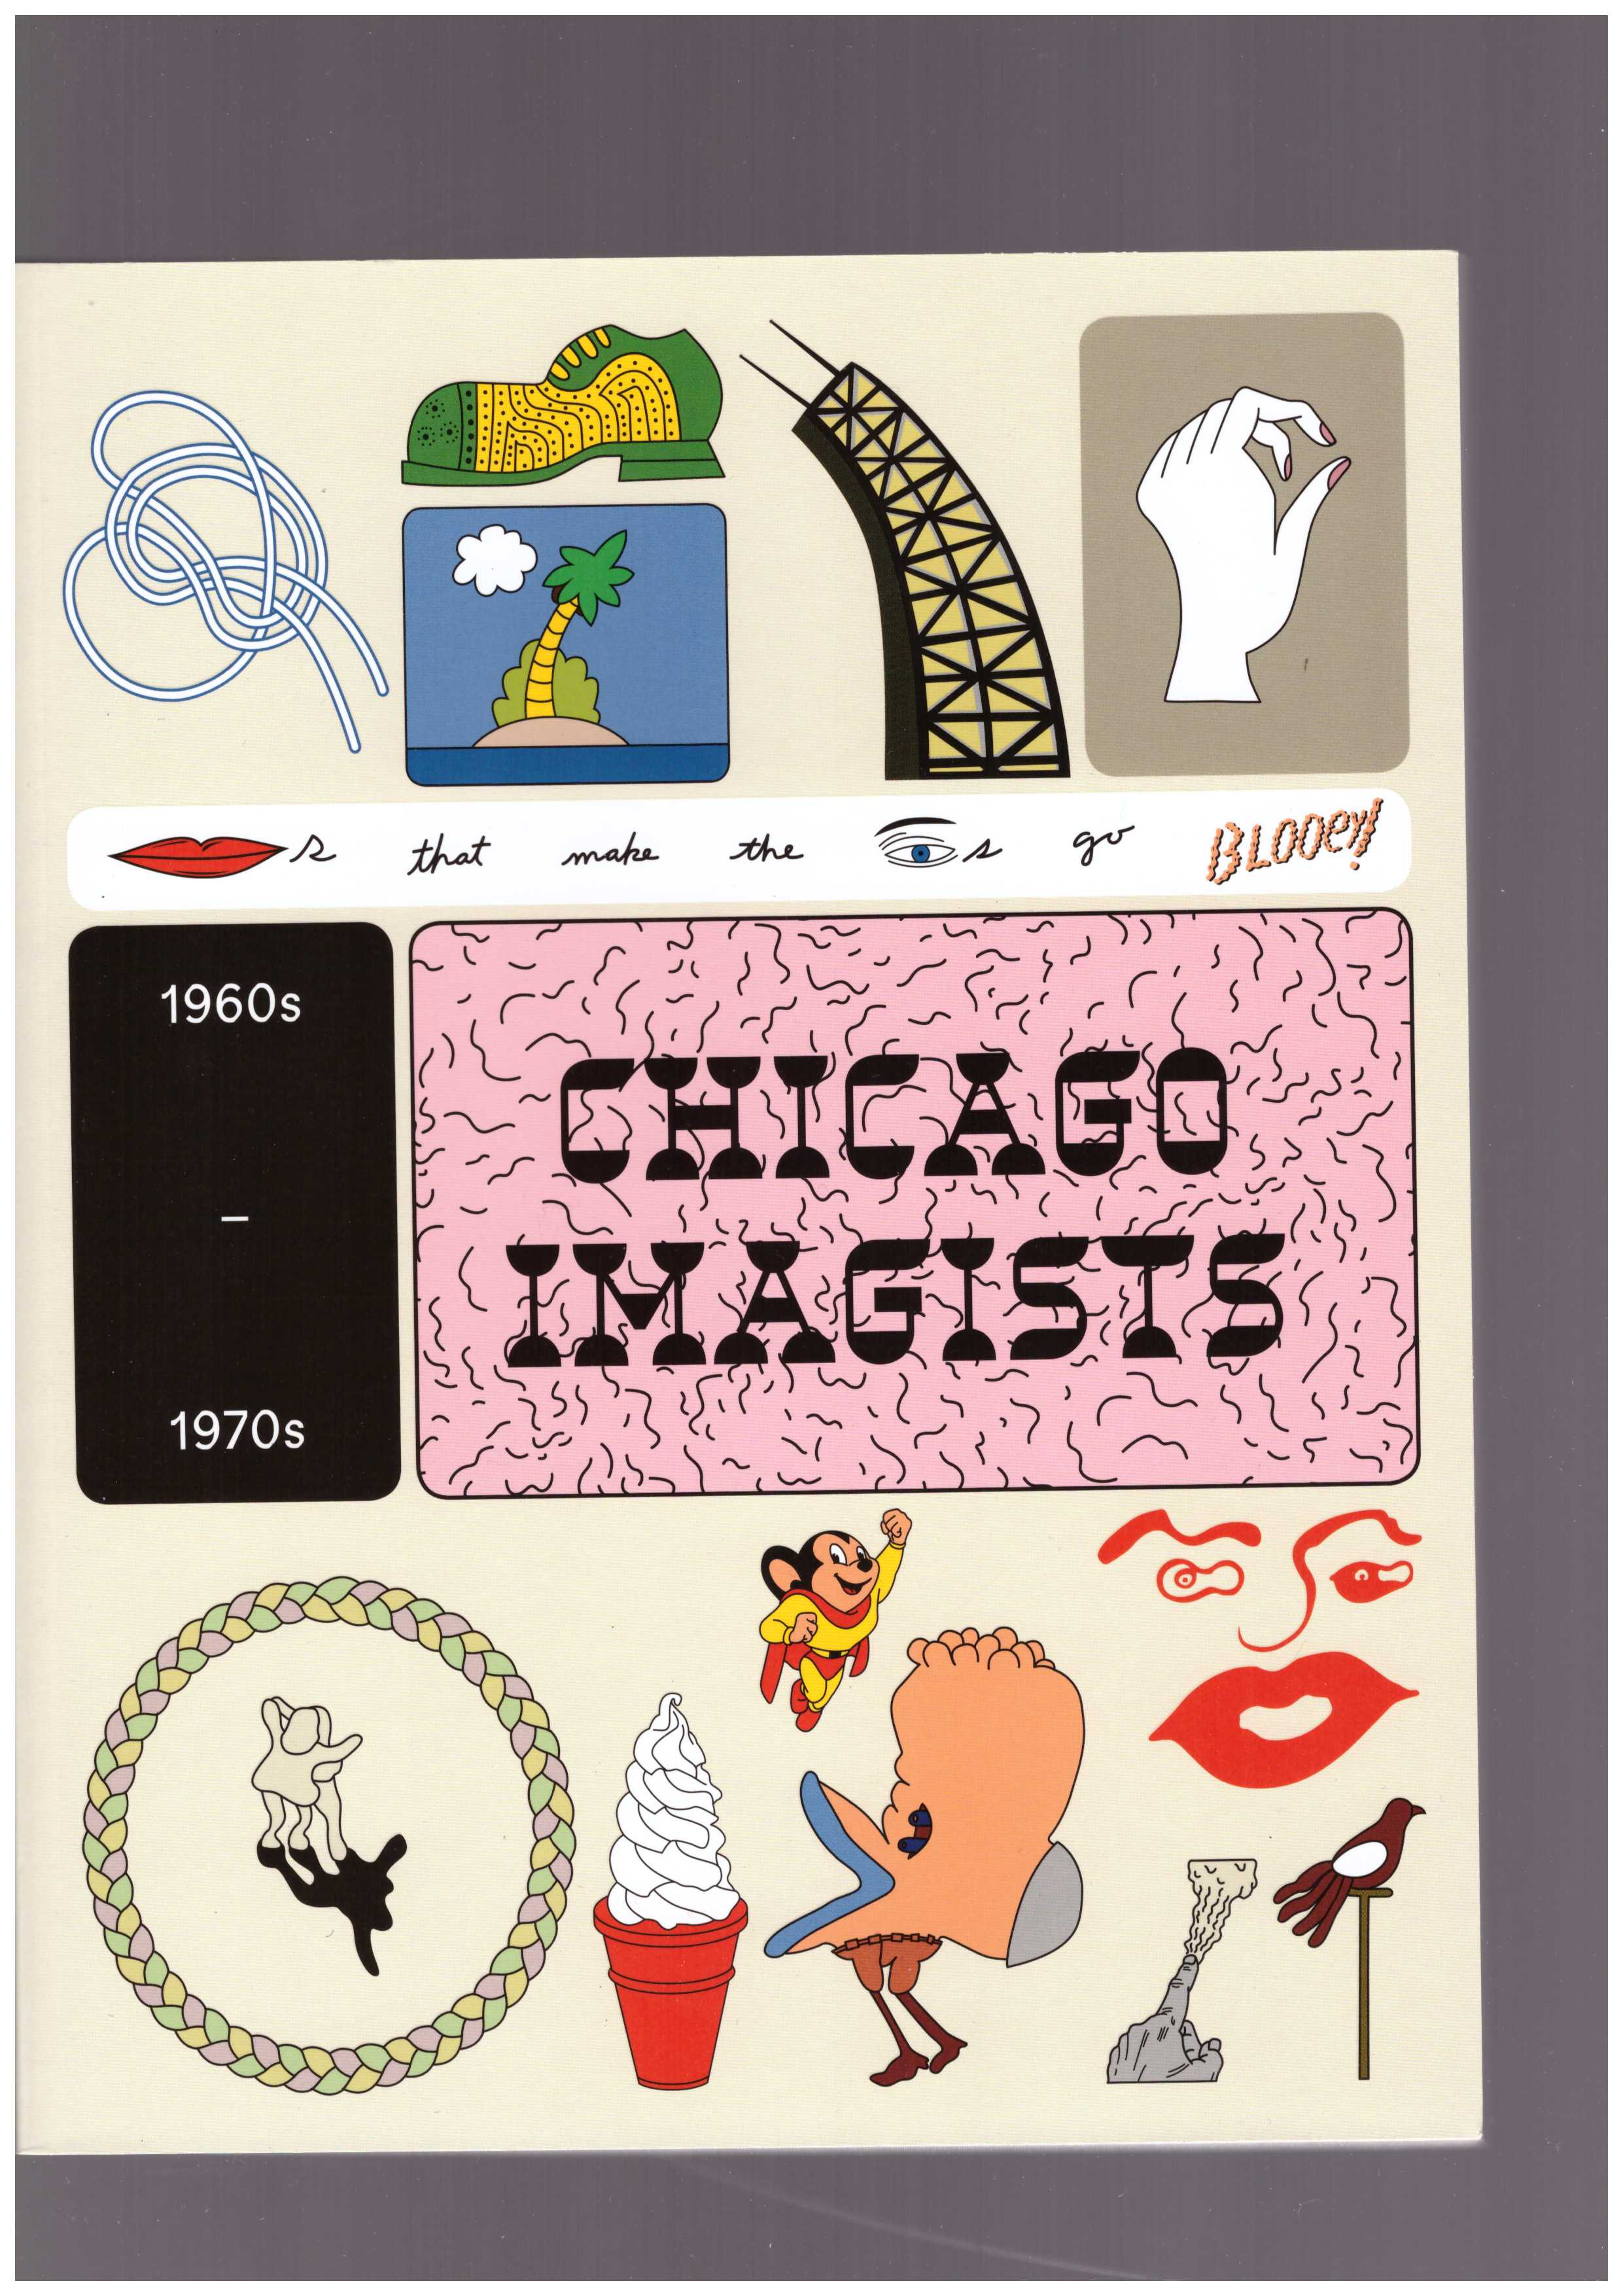 COOPER, Rosie; MC CRORY, Sarah (eds.) - Chicago Imagists 1960s - 1970s